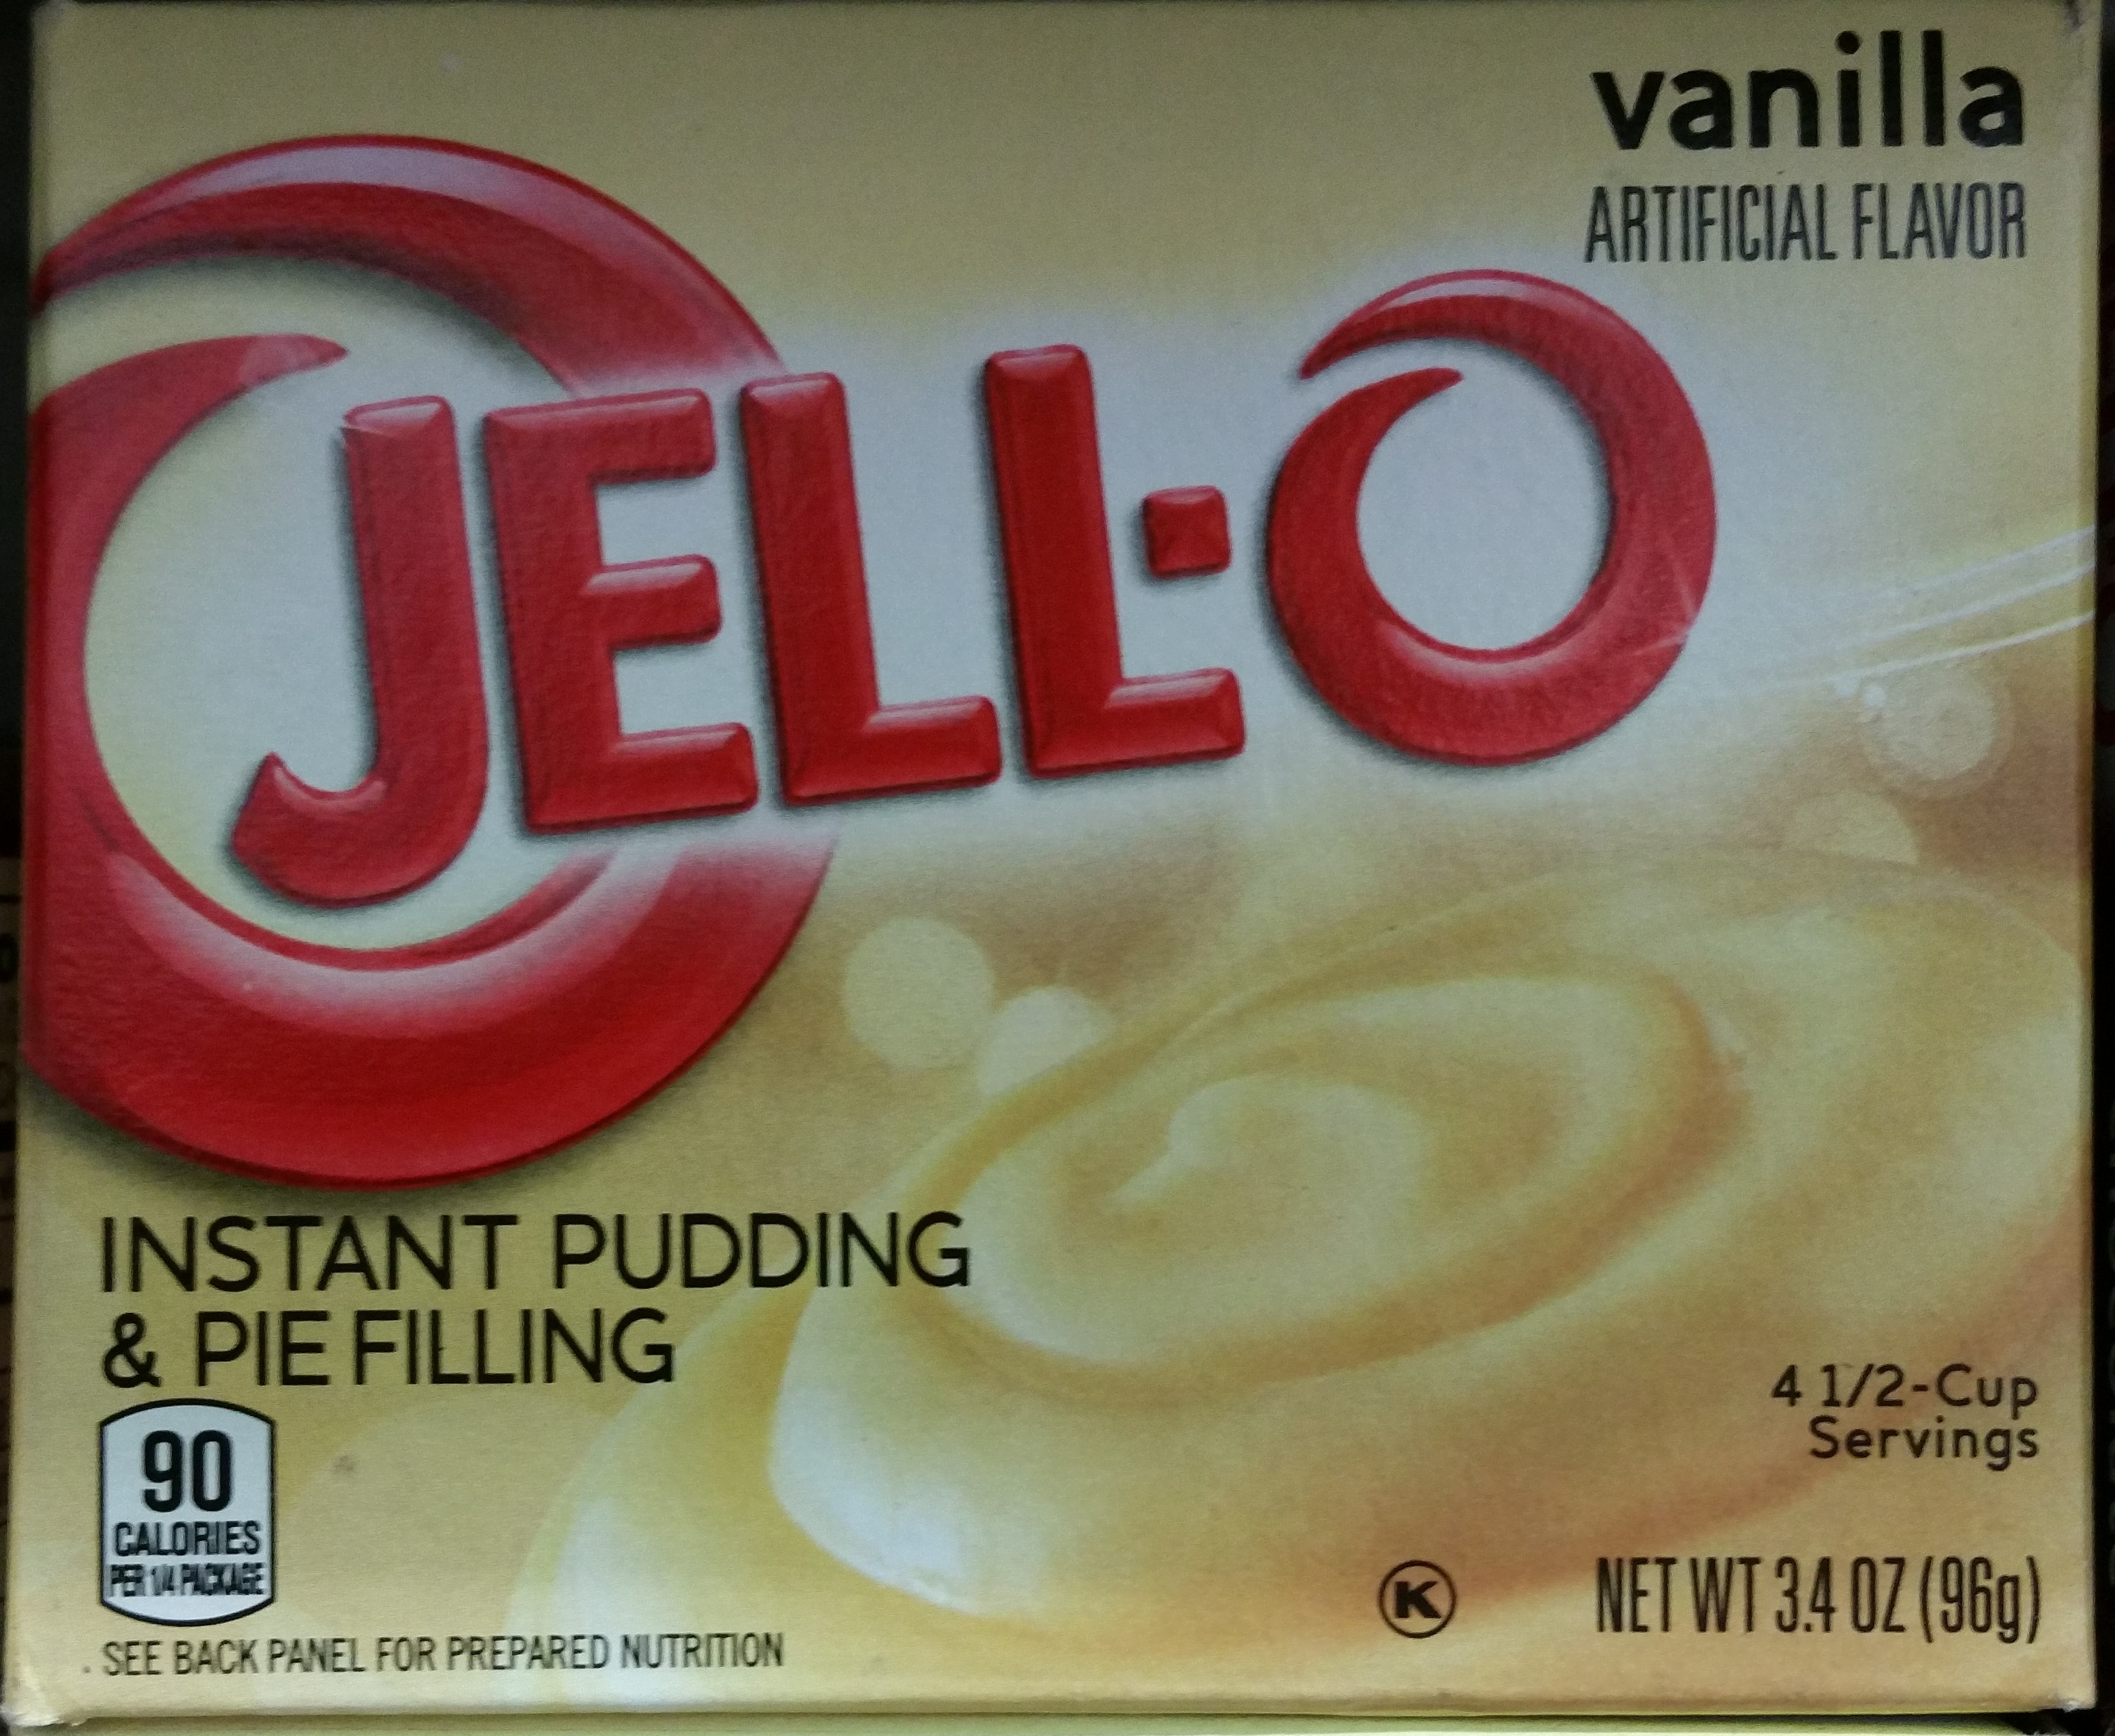 Jell-o vanille - Product